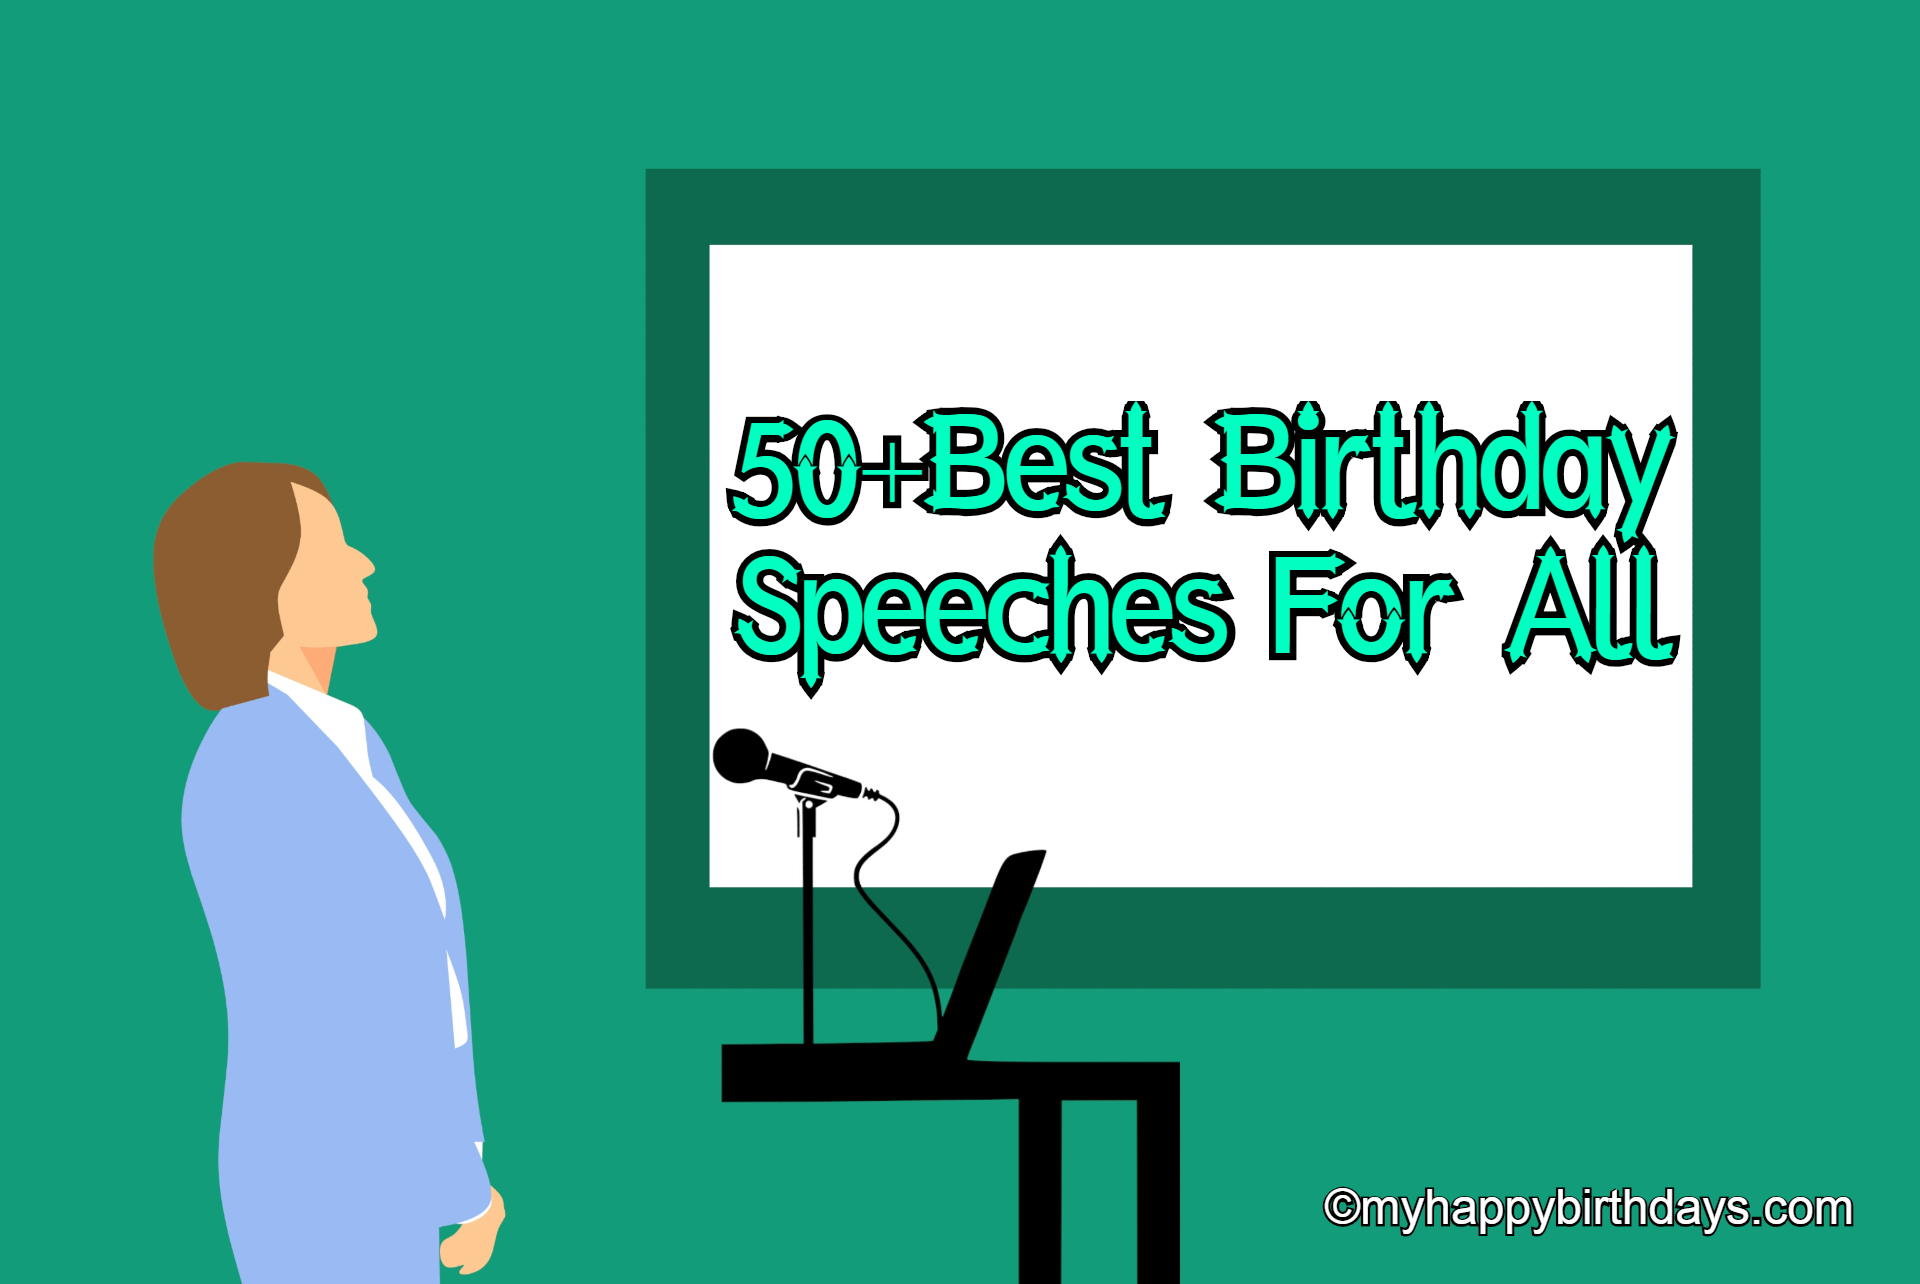 Birthday speech